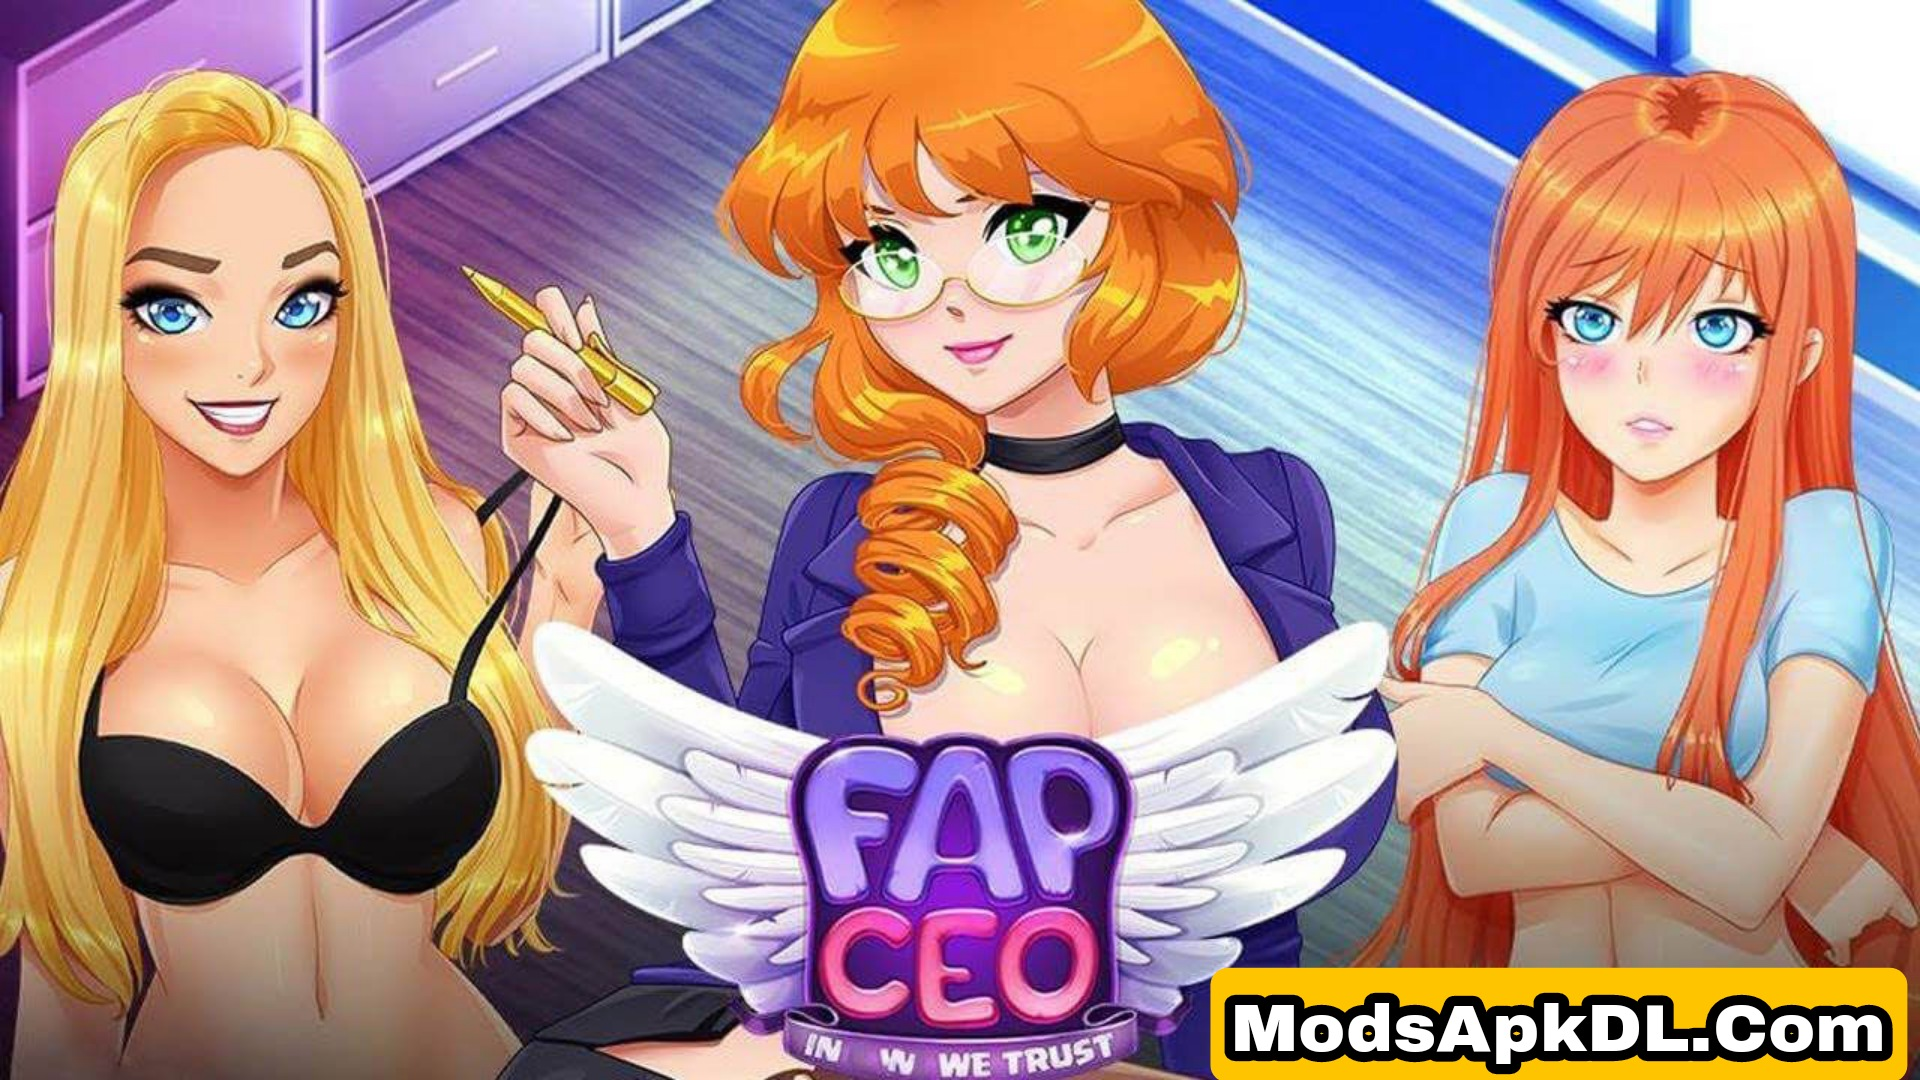 Fap CEO Apk v0.995 MOD (Unlimited Money) Download For Android